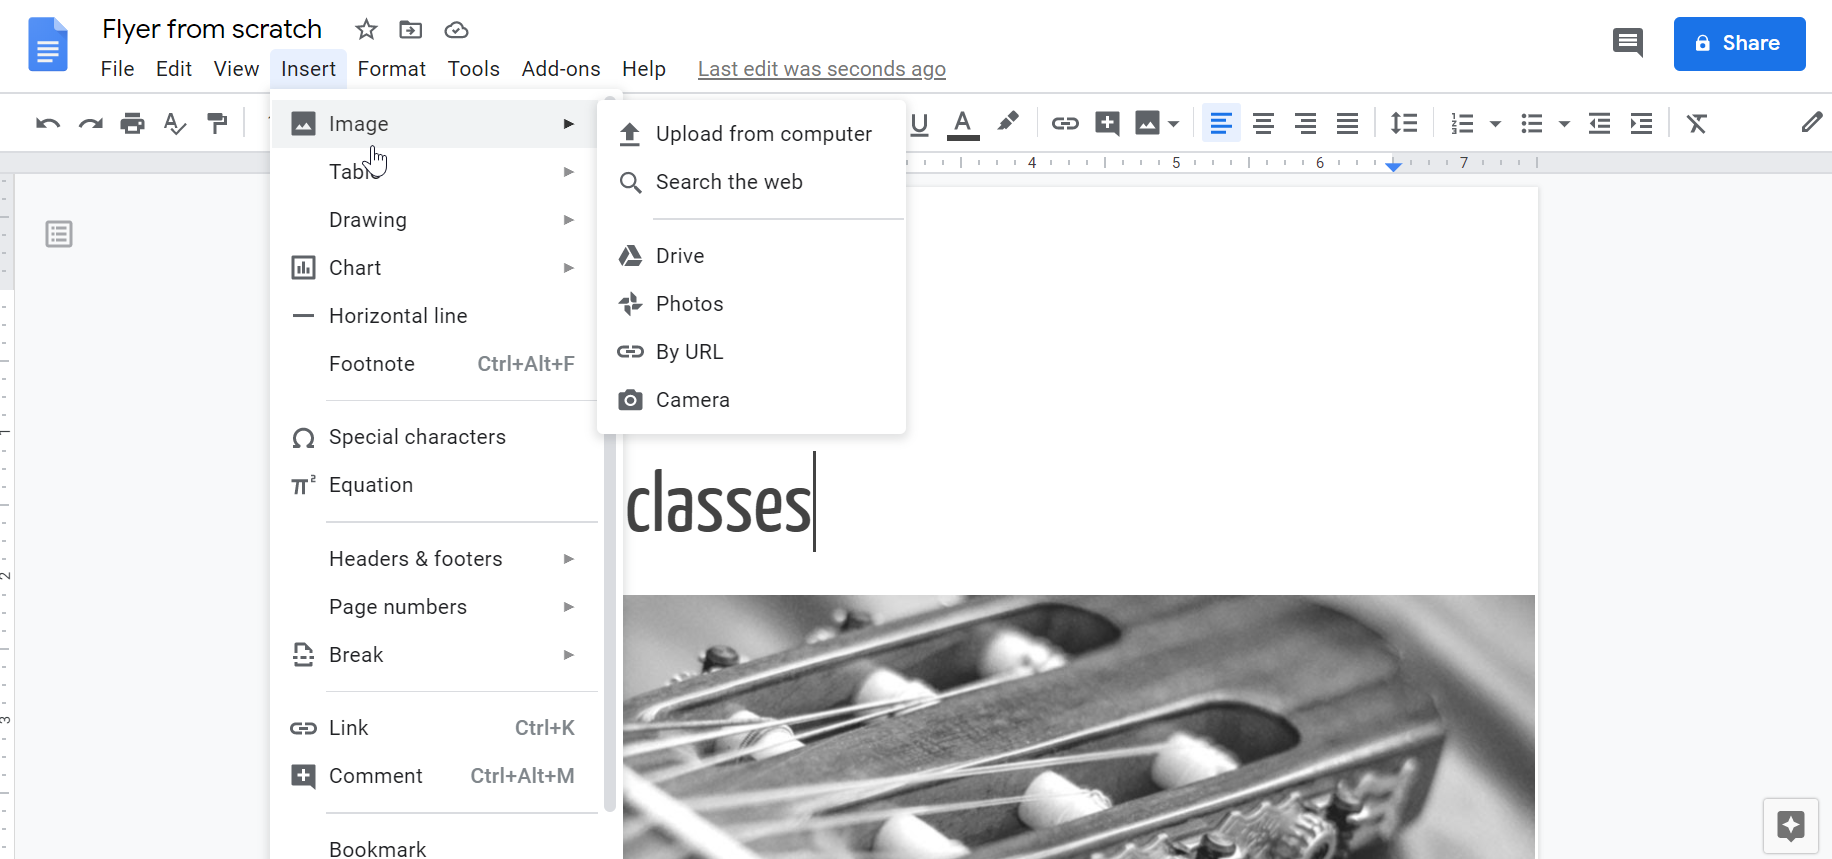 How to Make a Flyer on Google Docs